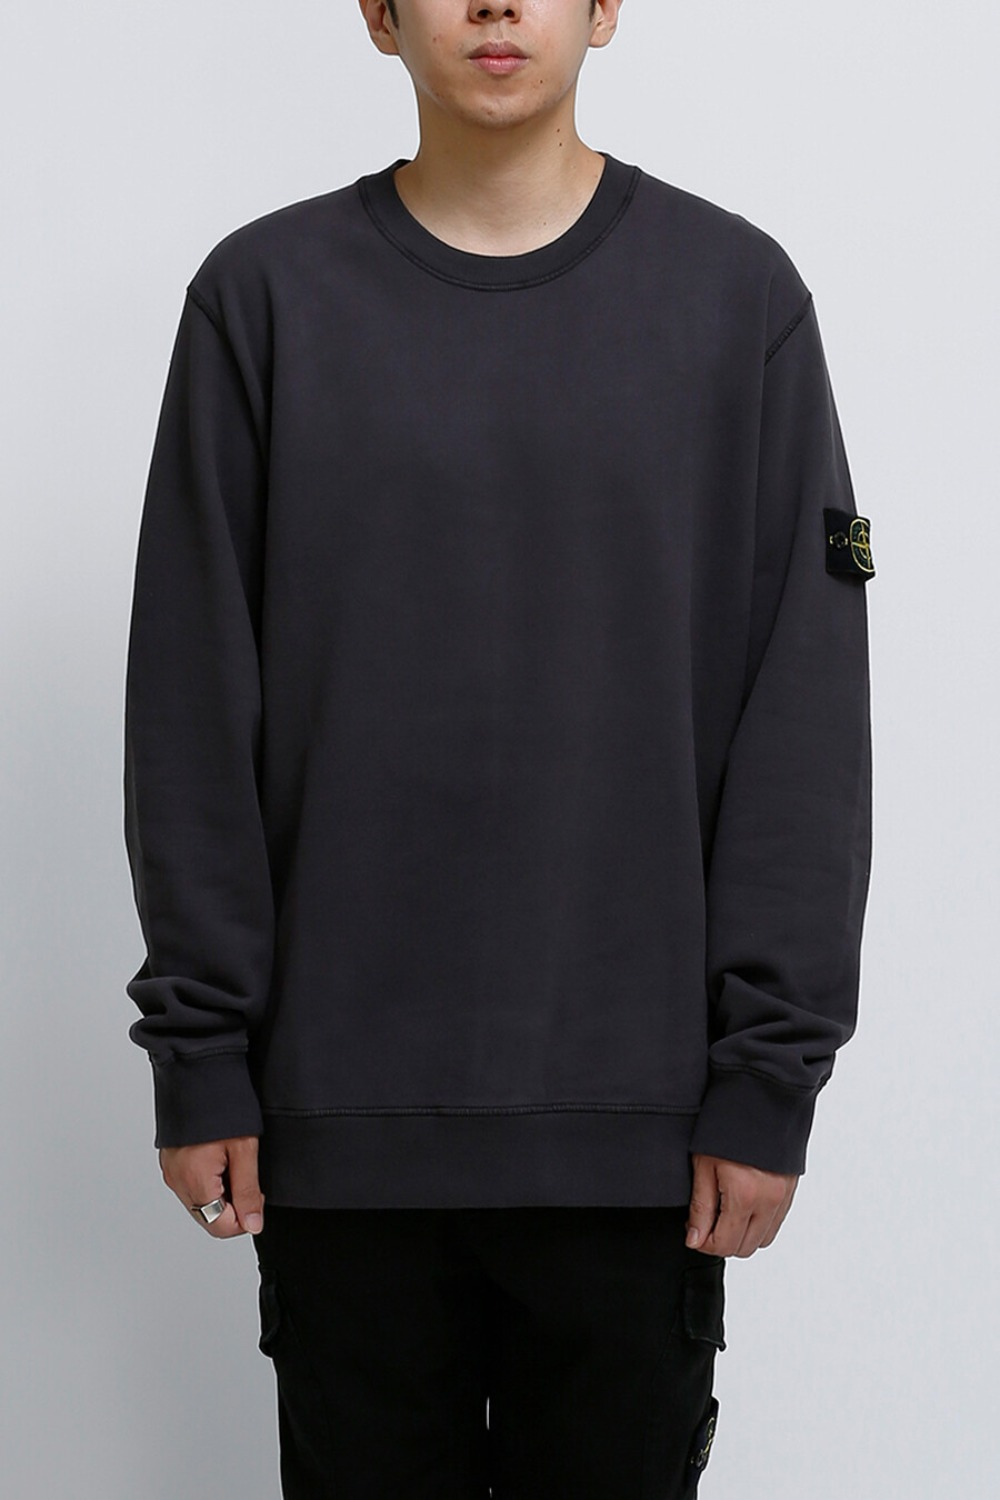 BRUSHED COTTON FLEECE GARMENT DYED SWEATSHIRT CHARCOAL